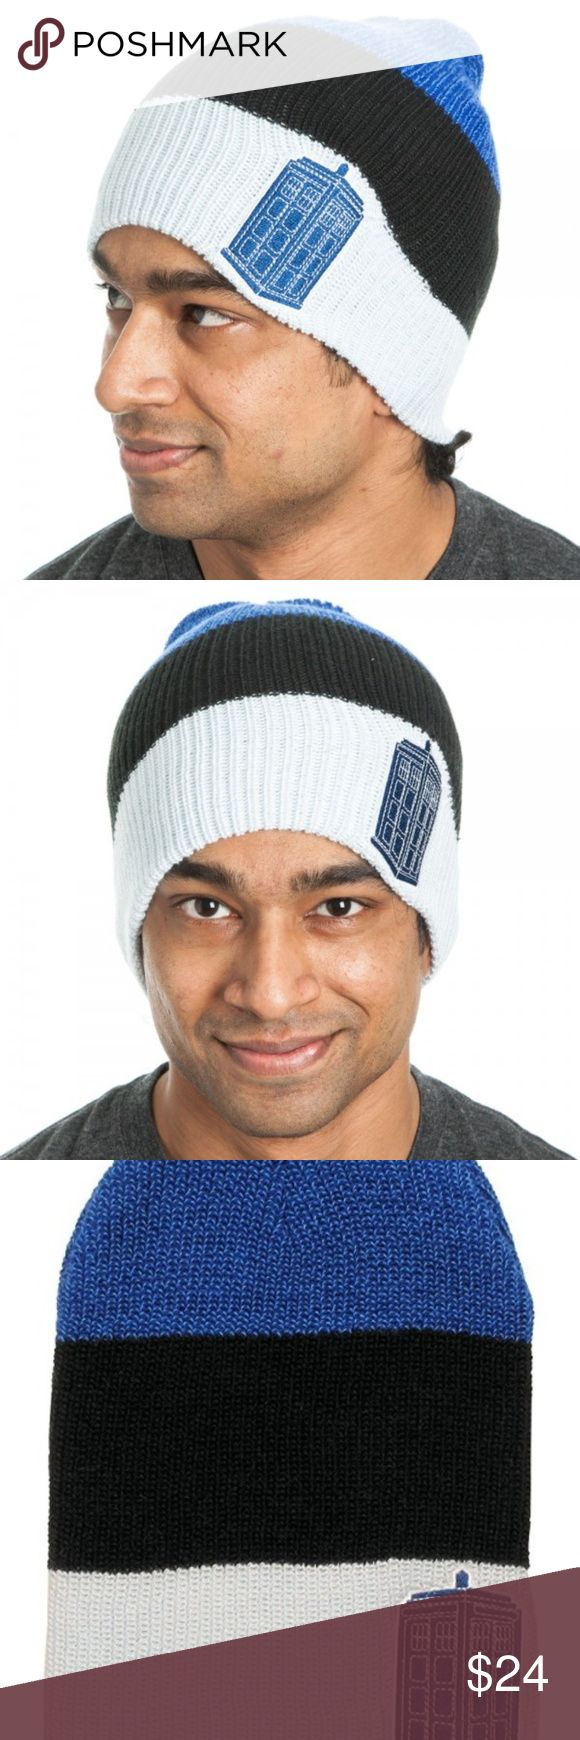 Doctor Who Tardis Slouch Beanie Hat This stretchy slouch-style knit beanie hat is very light weight.  It is striped blue, black, and white.  It has a patch of the Tardis.  Made by Bioworld - Officially Licensed Doctor Who merchandise.  Size: One Size Fits Most Age: Intended For Ages 14 and Up Brand: Bioworld  Perfect for any fan of Doctor Who!  Keep warm in the winter!  Makes a great gift!  CONDITION - New  Check out my Posh for more Nerdy Greatness! Bioworld Accessories Hats